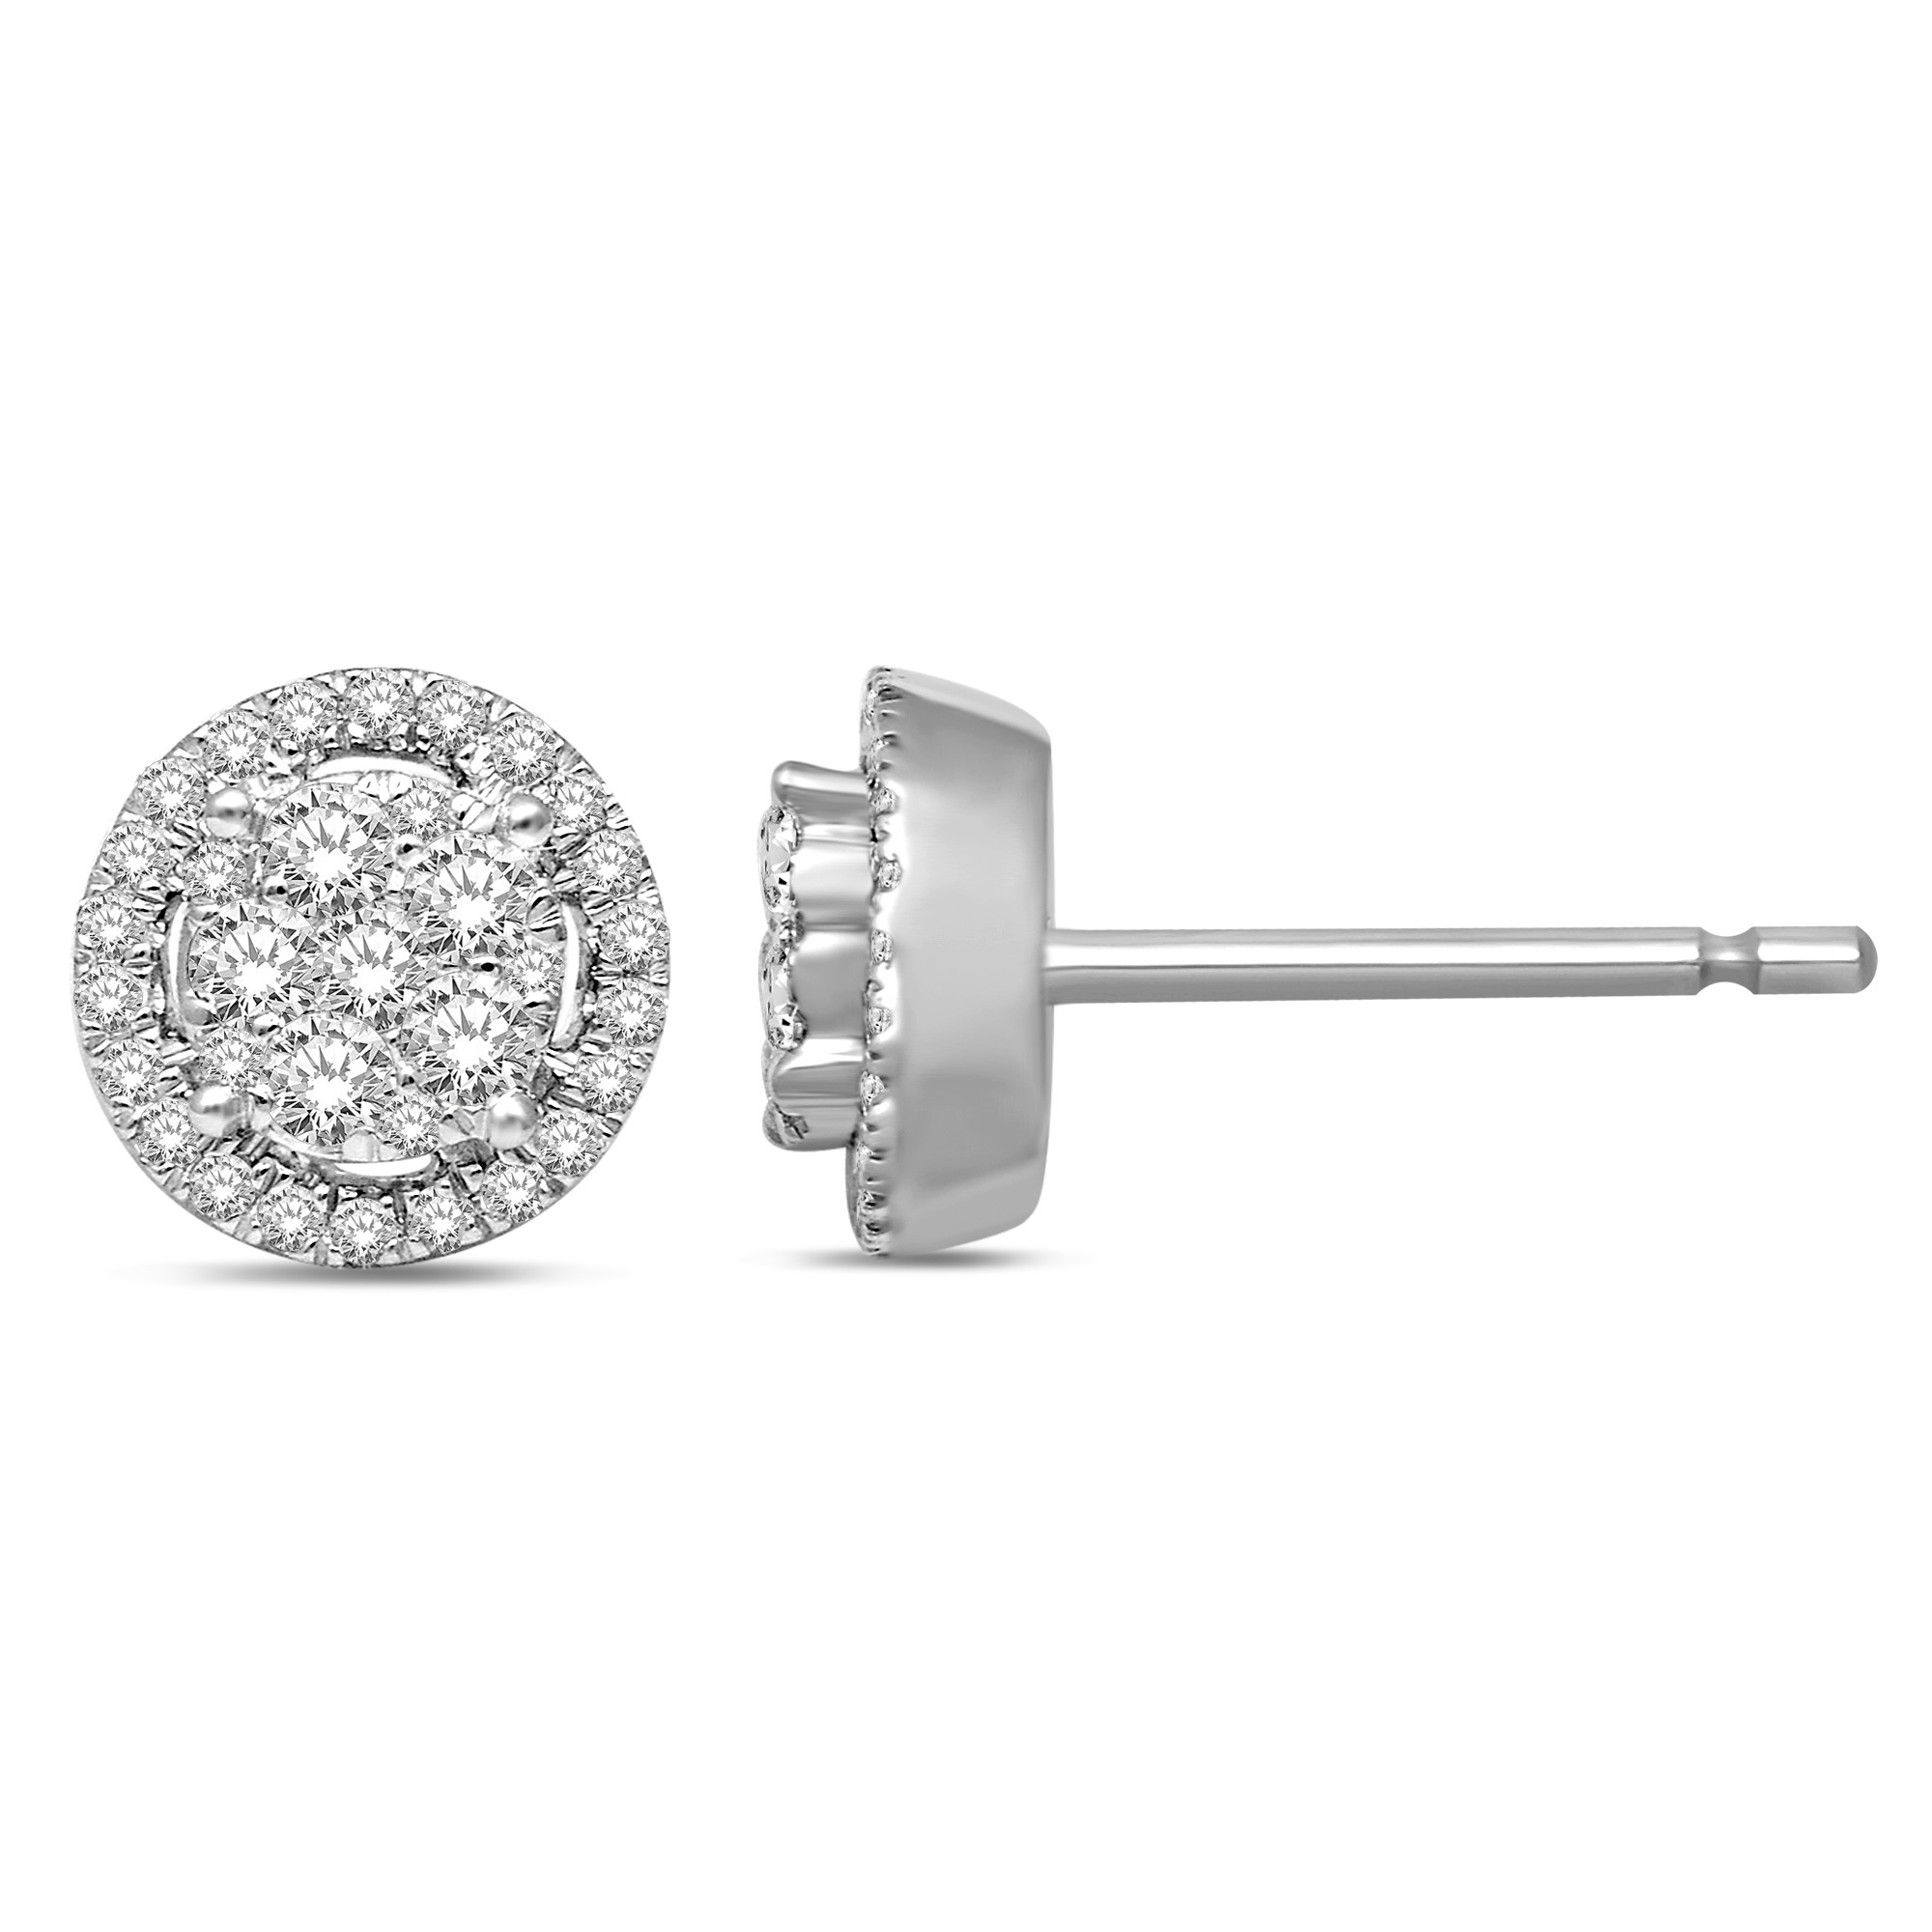 Boucles d'oreilles à tiges fixes pour femme - Or blanc 14K & Diamants totalisant 1.00 Carat